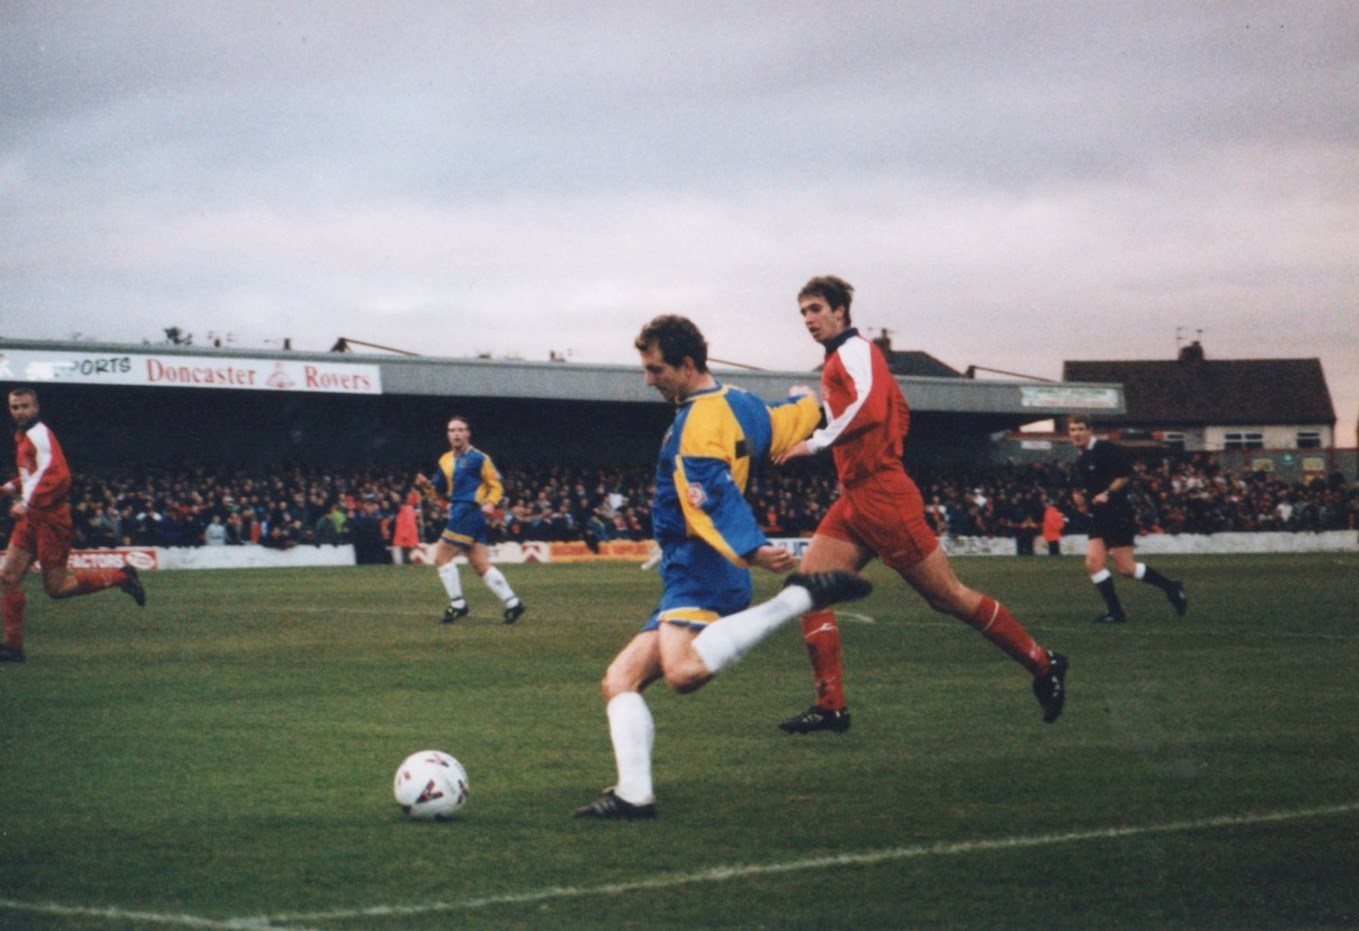 Lee Howells in action for Cheltenham at Doncaster